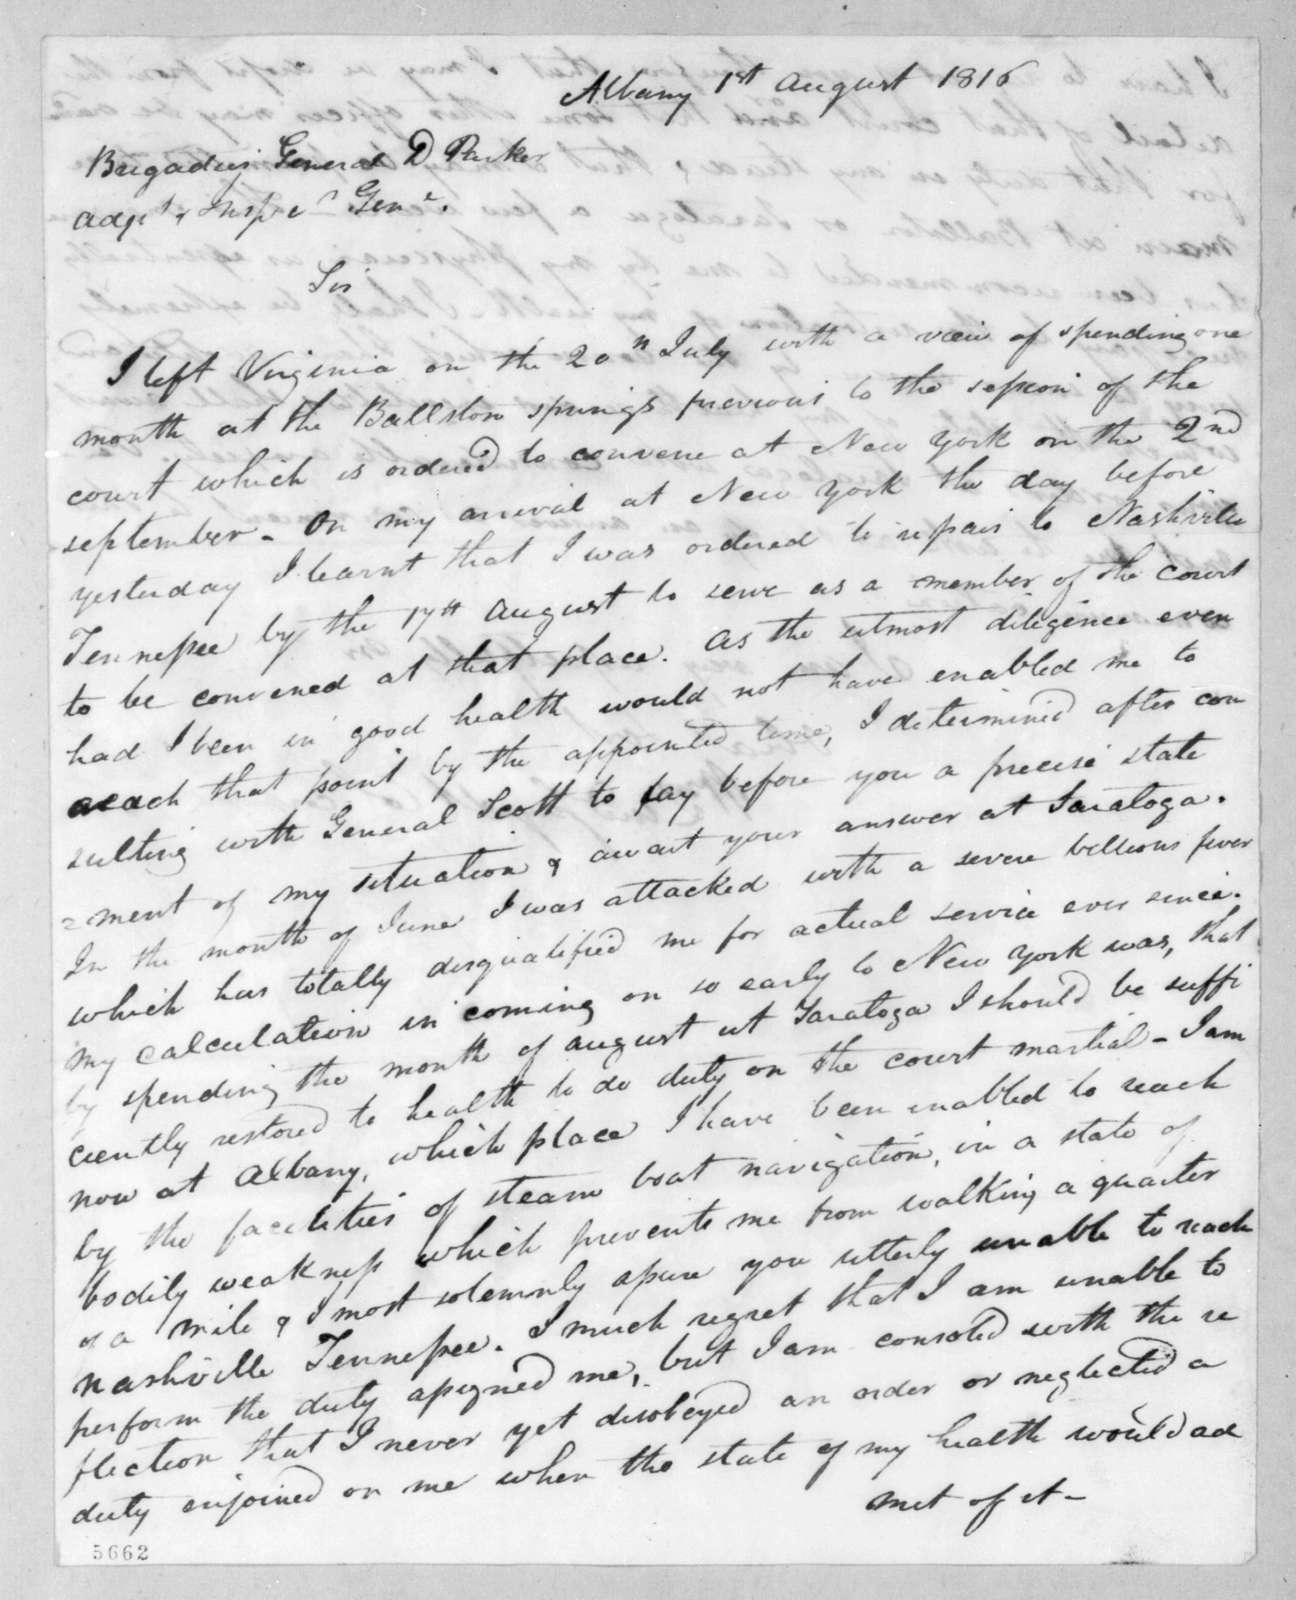 William Lindsay to Daniel Parker, August 1, 1816